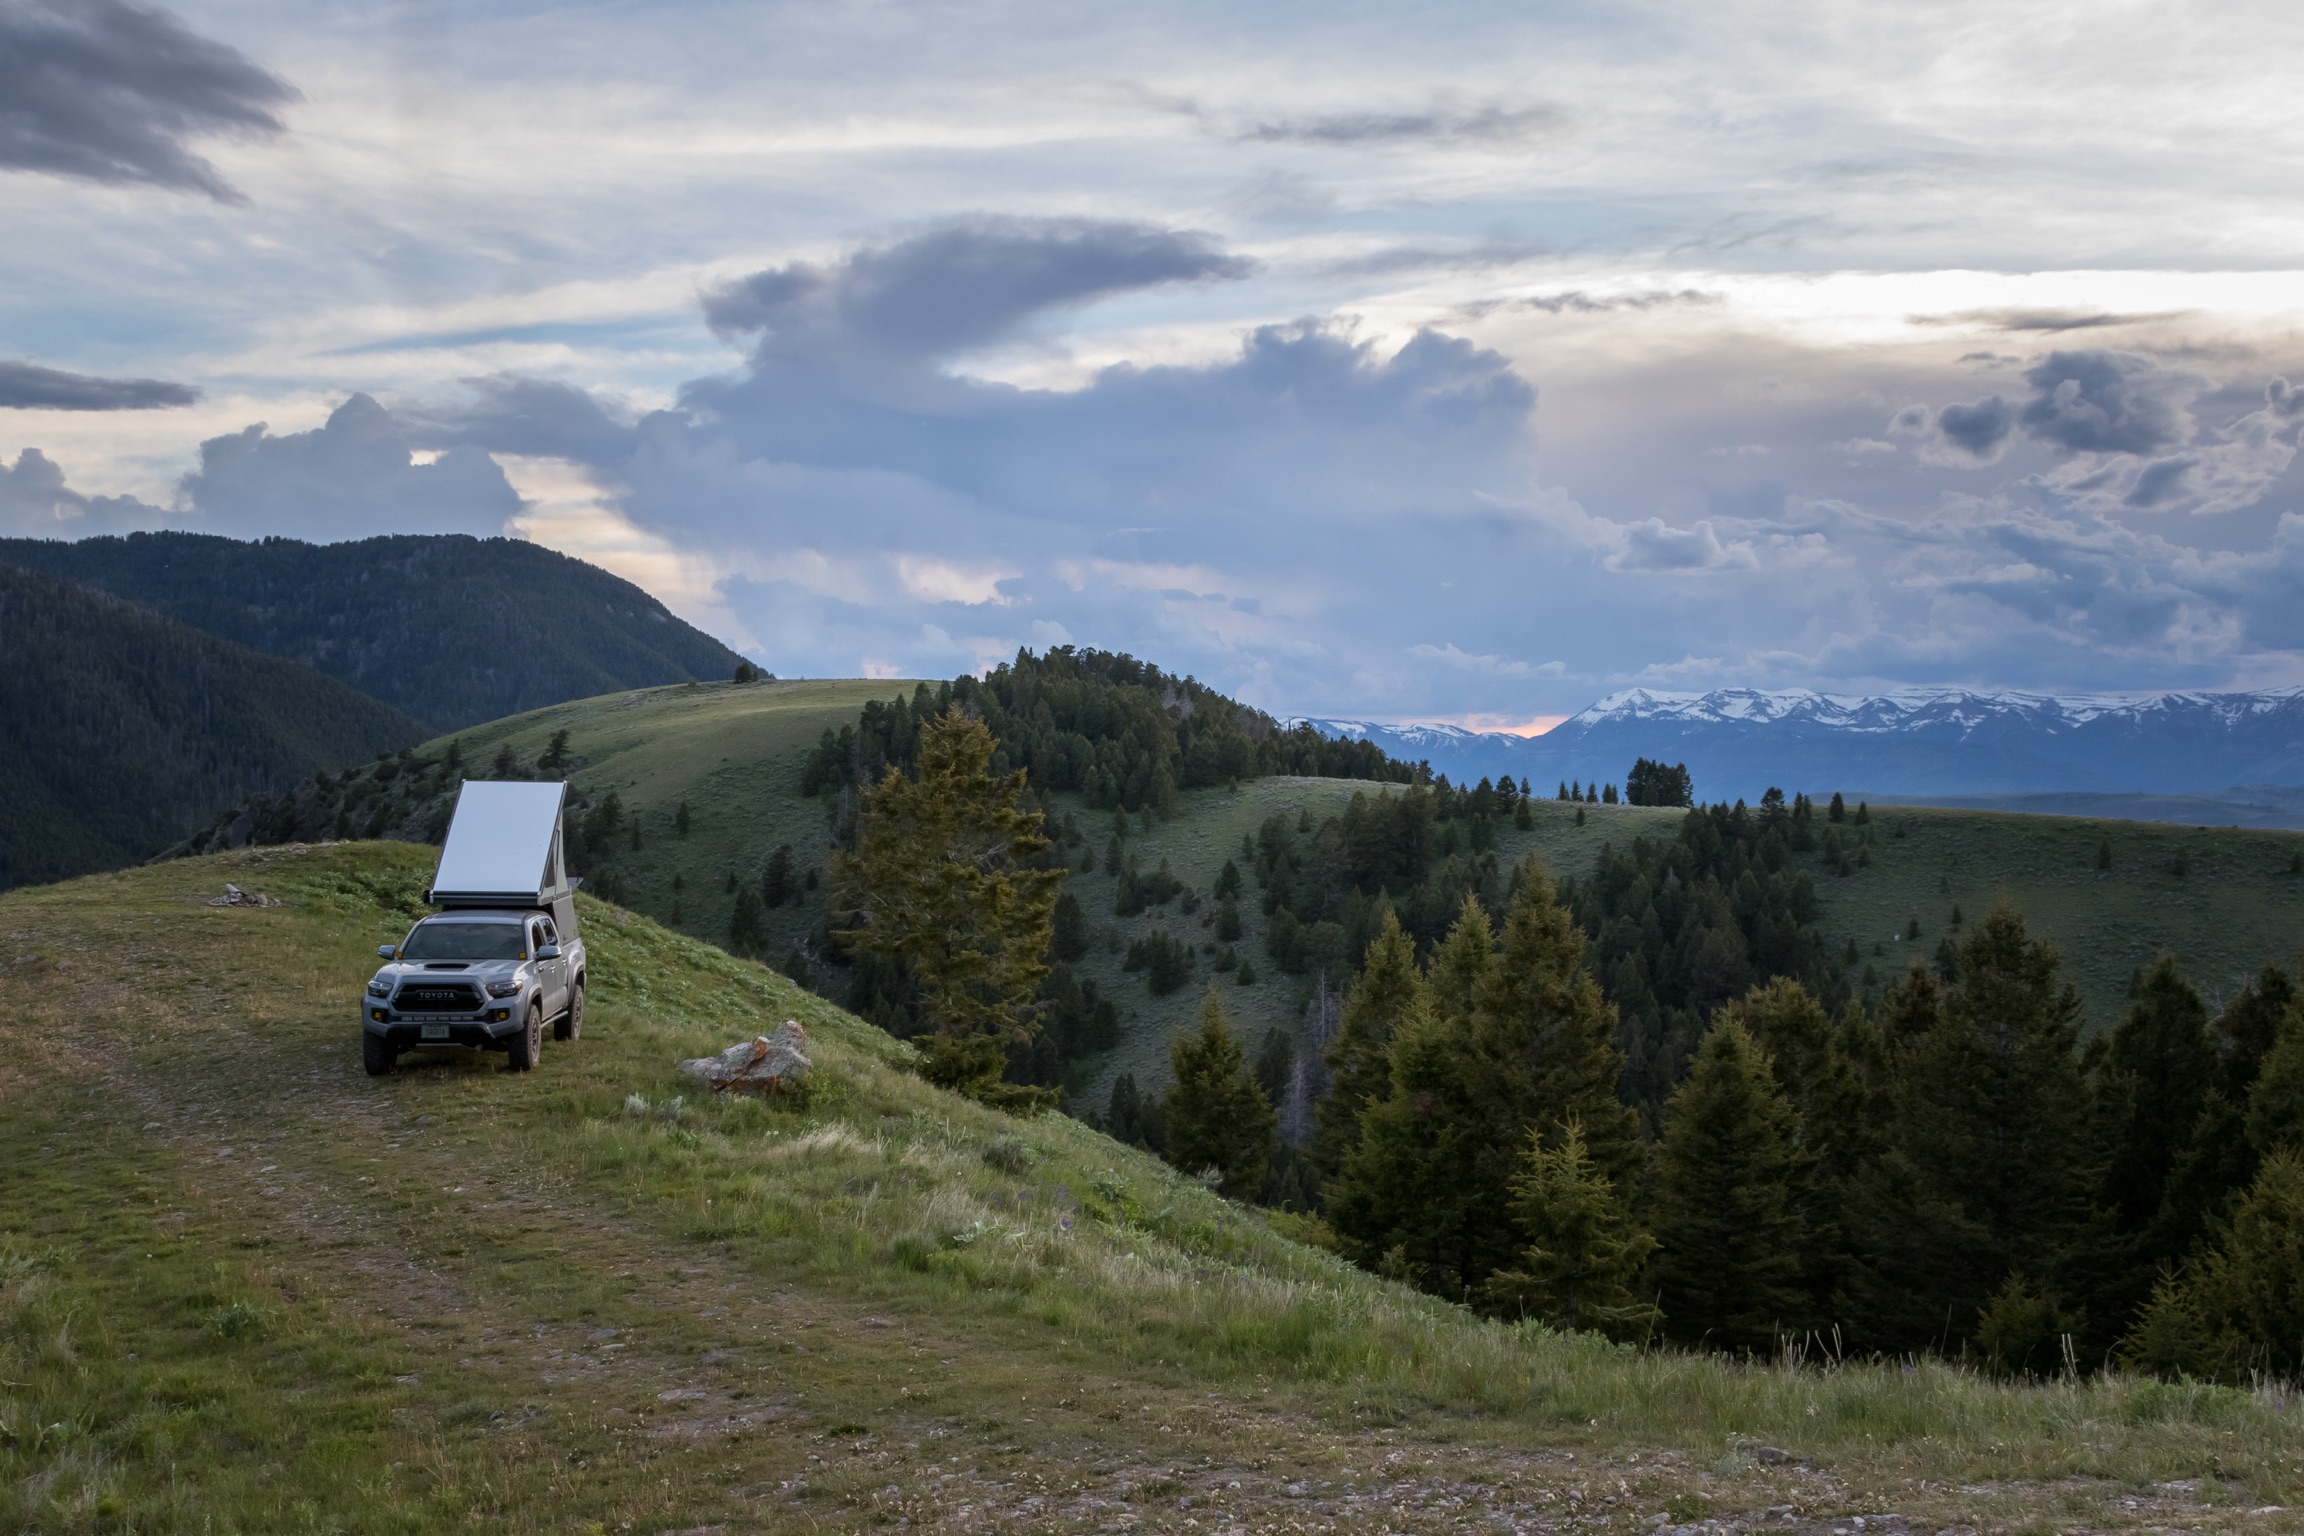 Photo by Zayne Watson  Camping outside of the Grand Teton National Park in our Go Fast Camper on a 4,200 mile trip from Ohio.